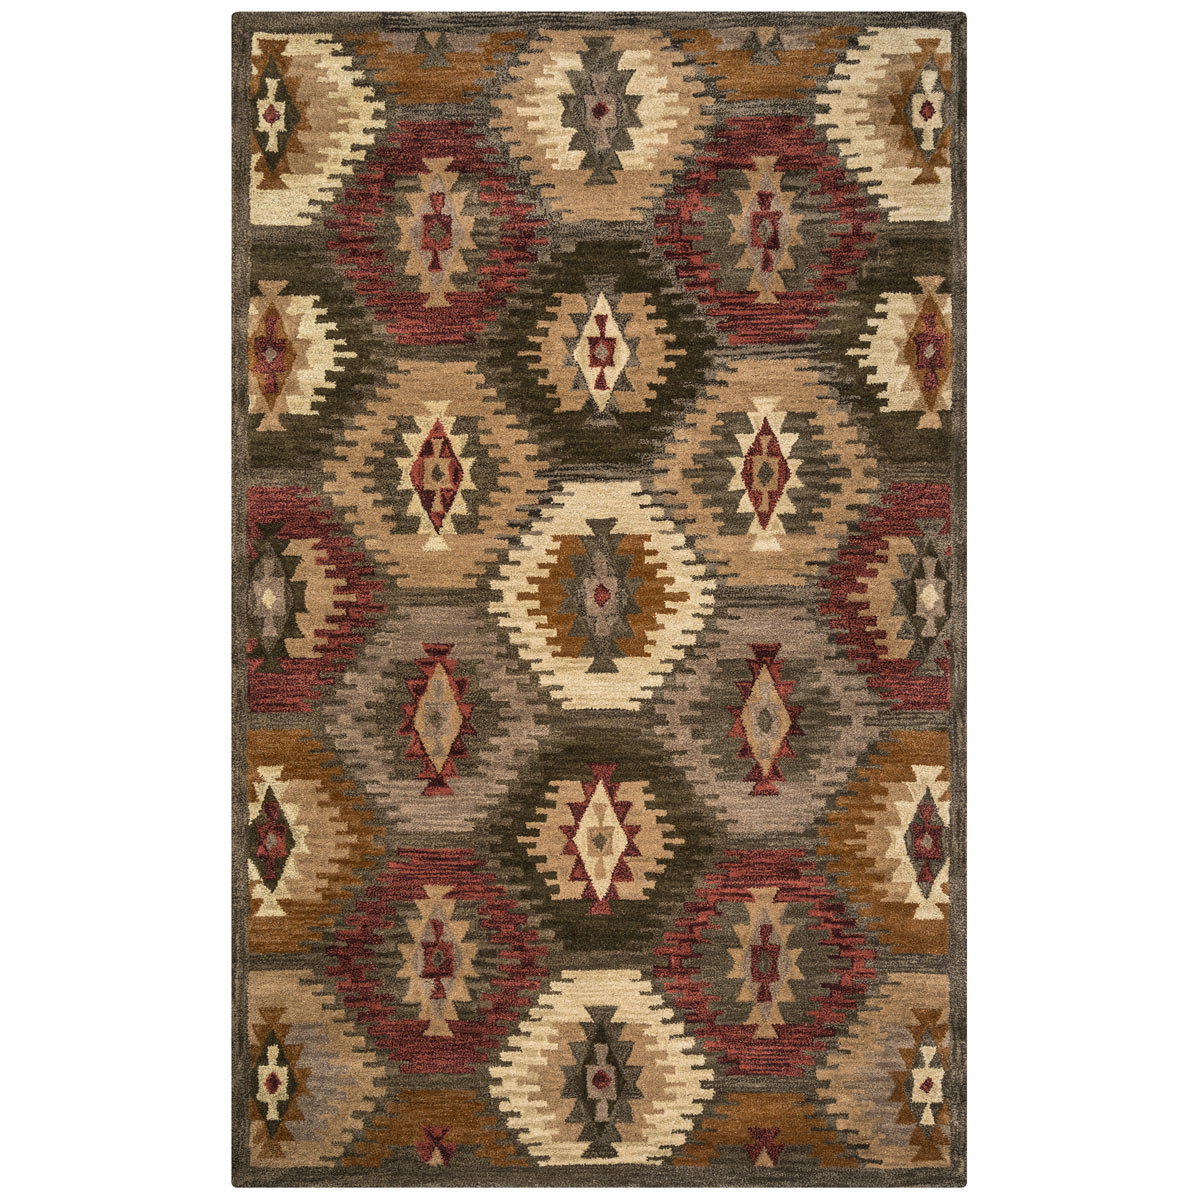 Southwest Honeycomb Rug - 3 x 5